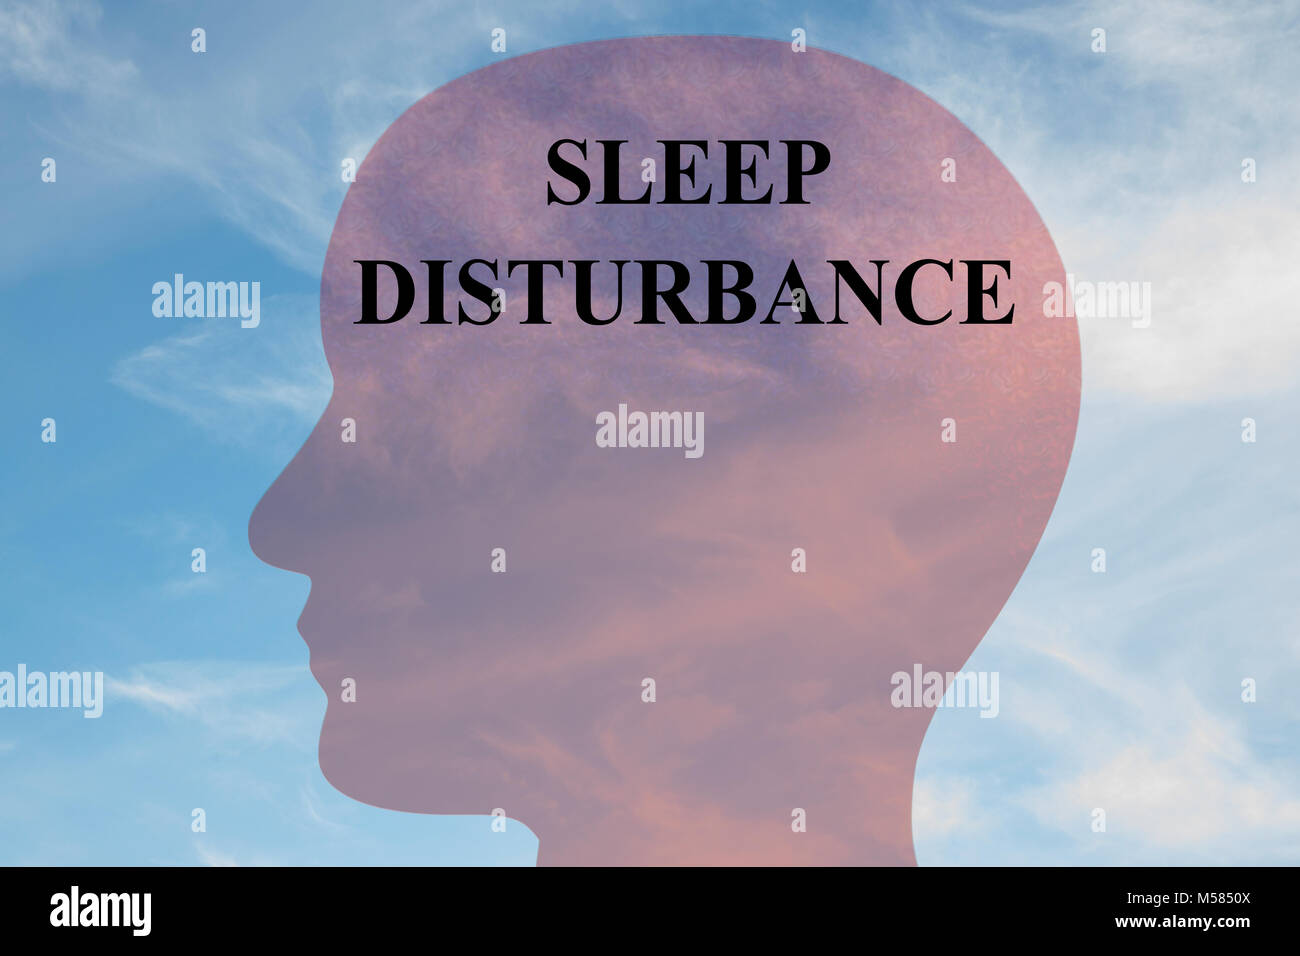 Render illustration of SLEEP DISTURBANCE title on head silhouette, with cloudy sky as a background. - Stock Image